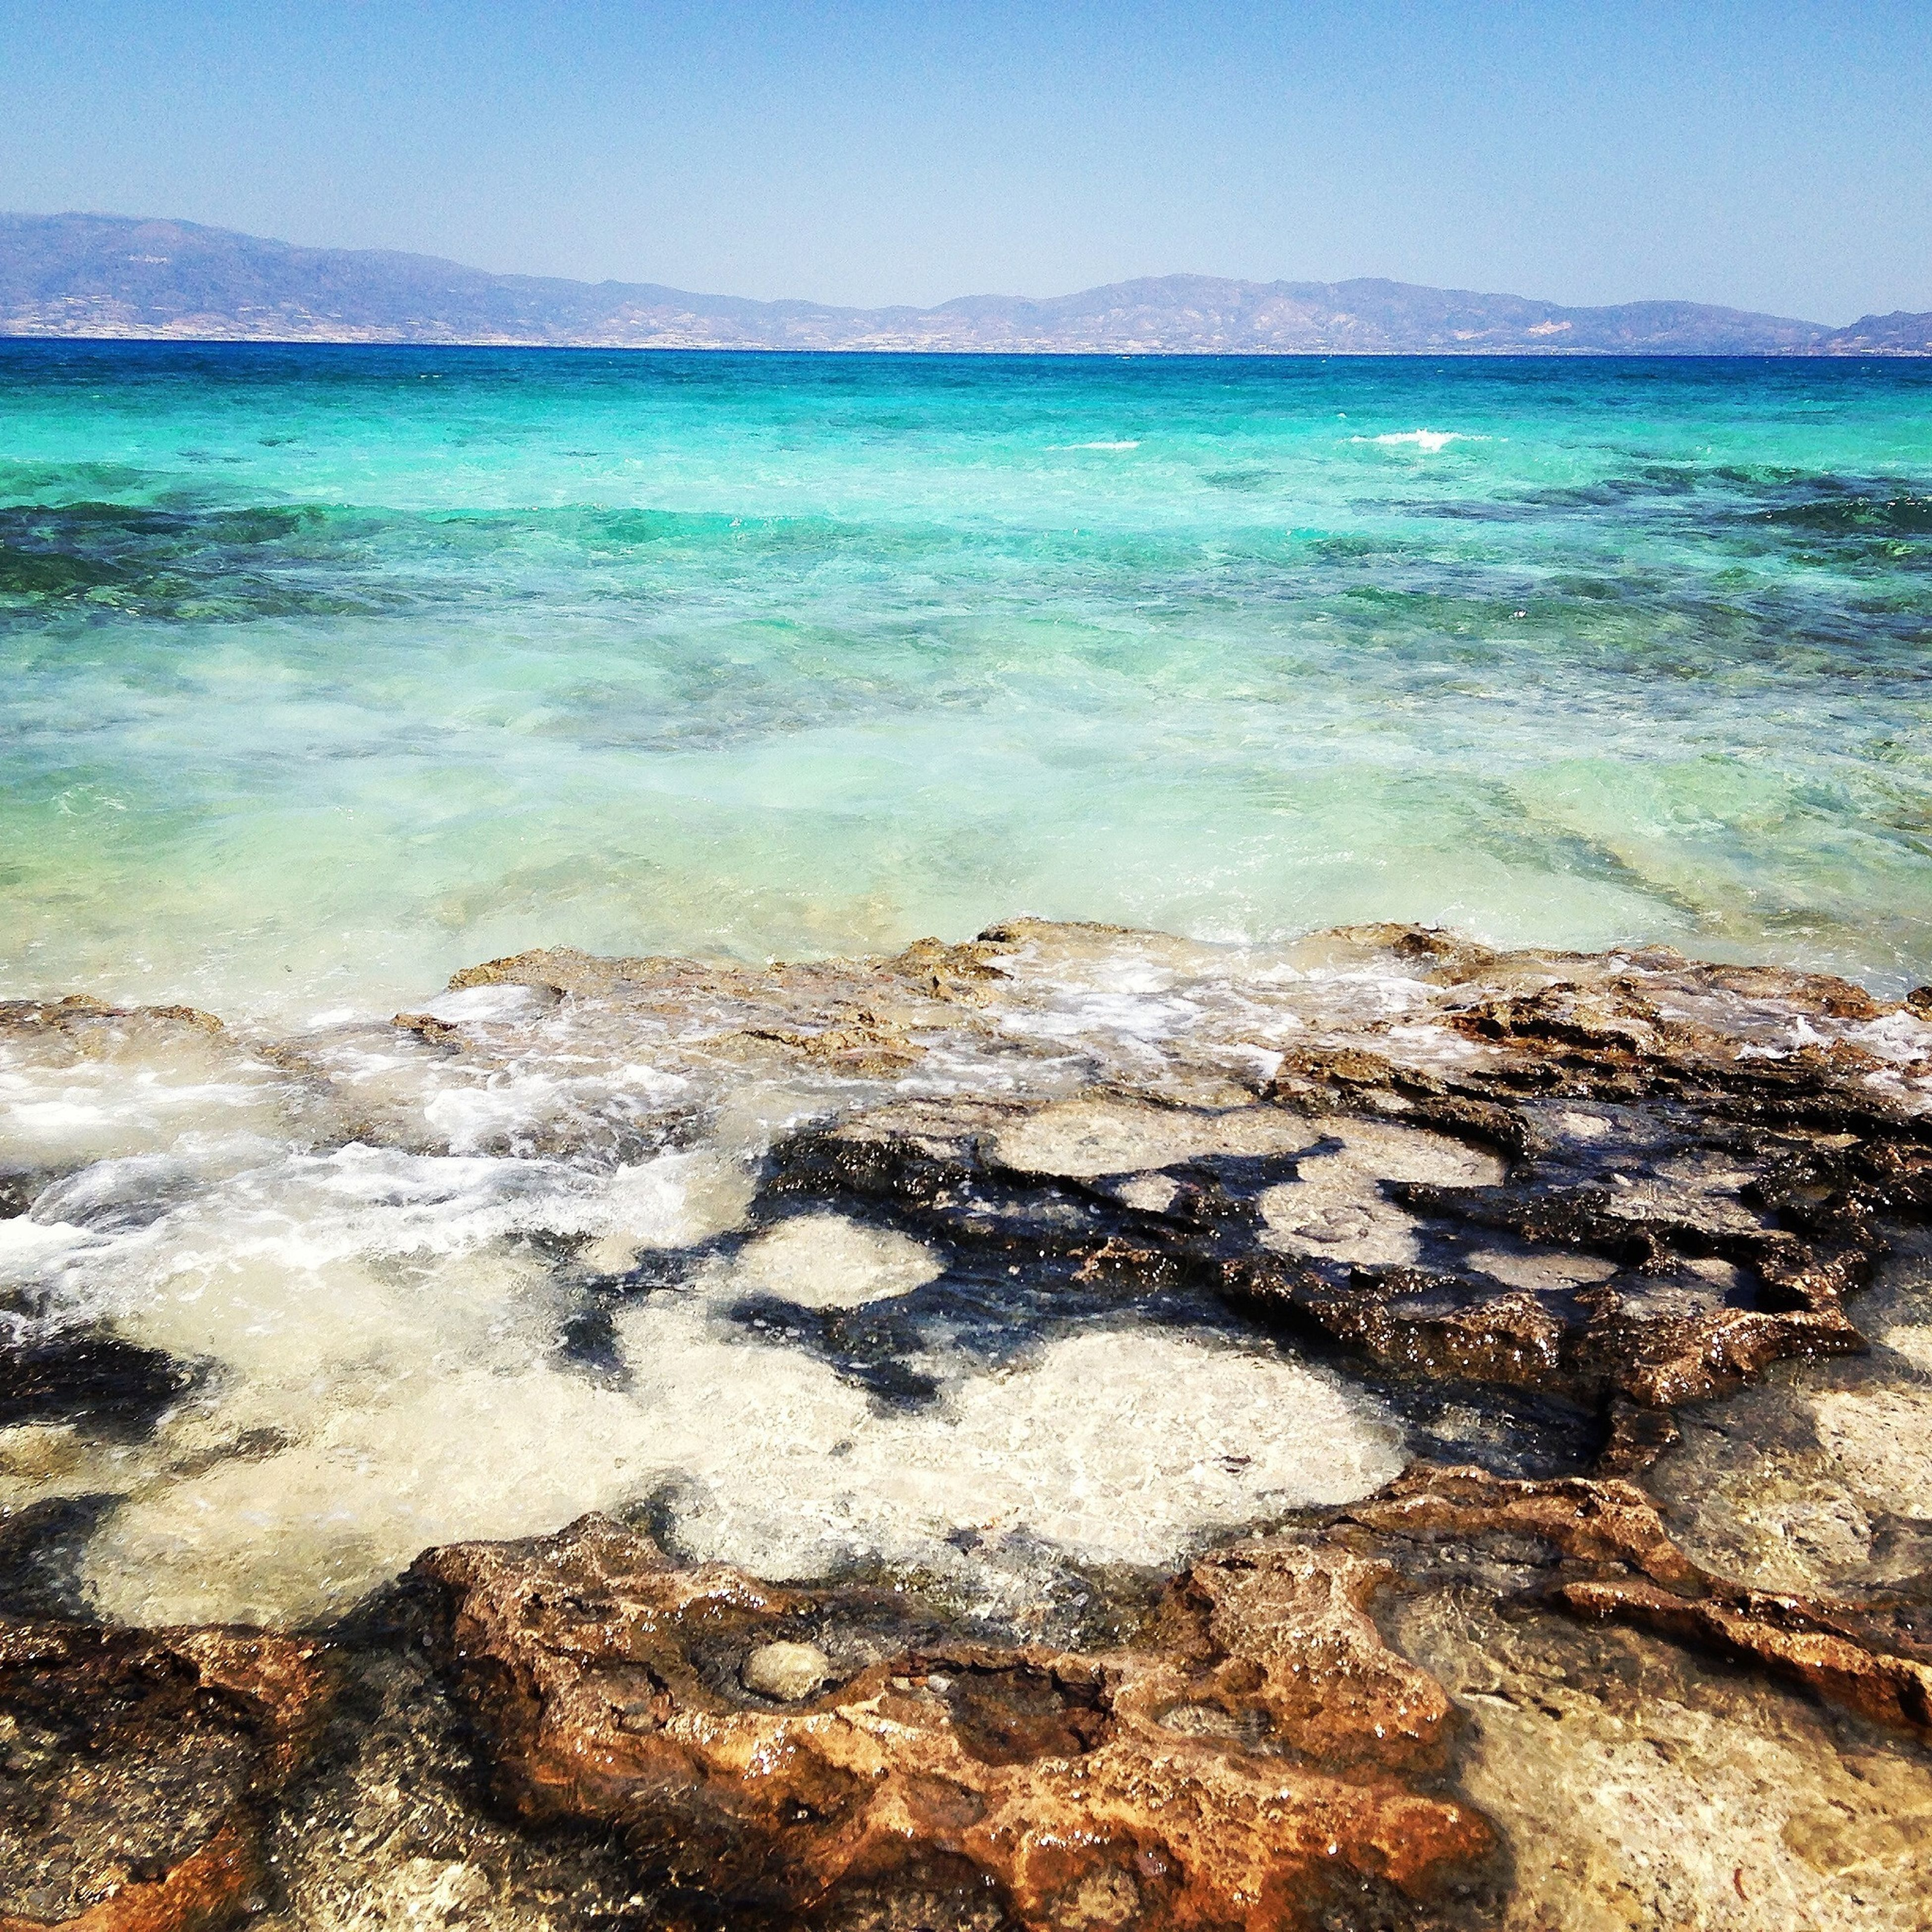 water, sea, beach, shore, tranquil scene, scenics, tranquility, beauty in nature, blue, horizon over water, wave, nature, surf, sky, sand, idyllic, clear sky, rock - object, coastline, outdoors